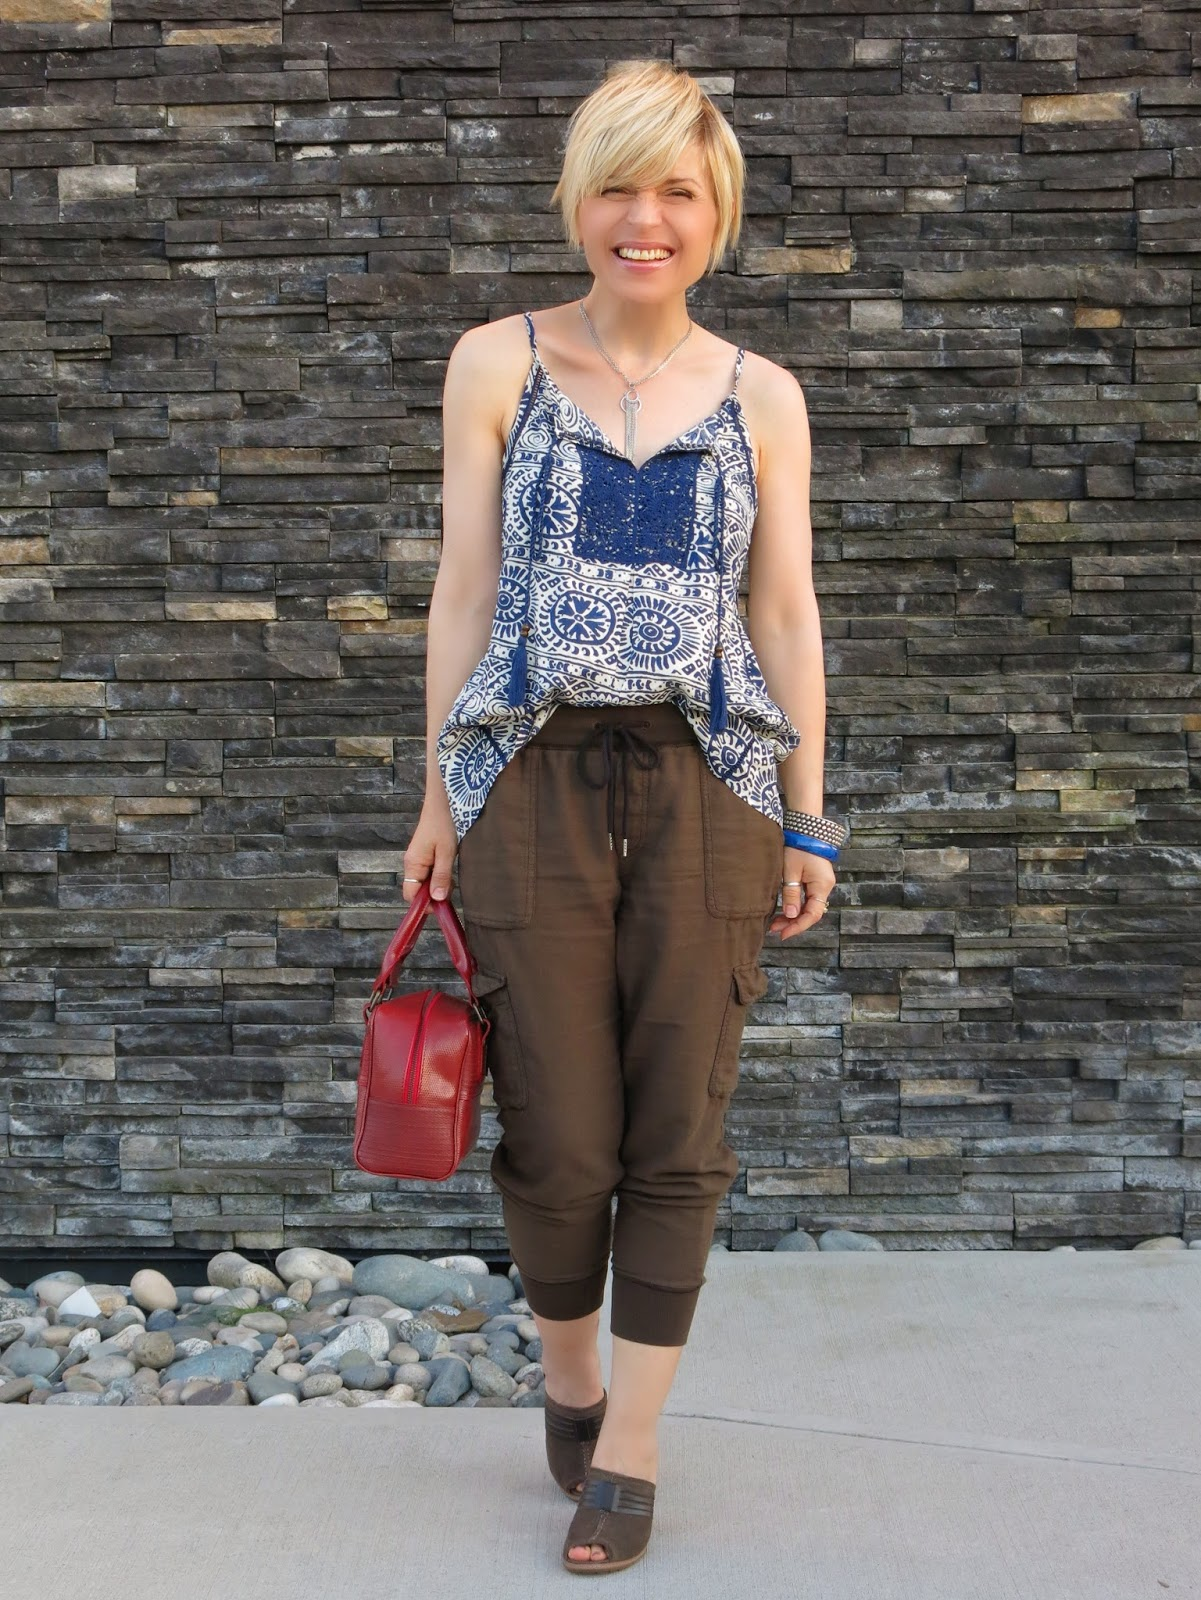 styling slouchy cargo pants with a peasant-style tank top and a red box bag